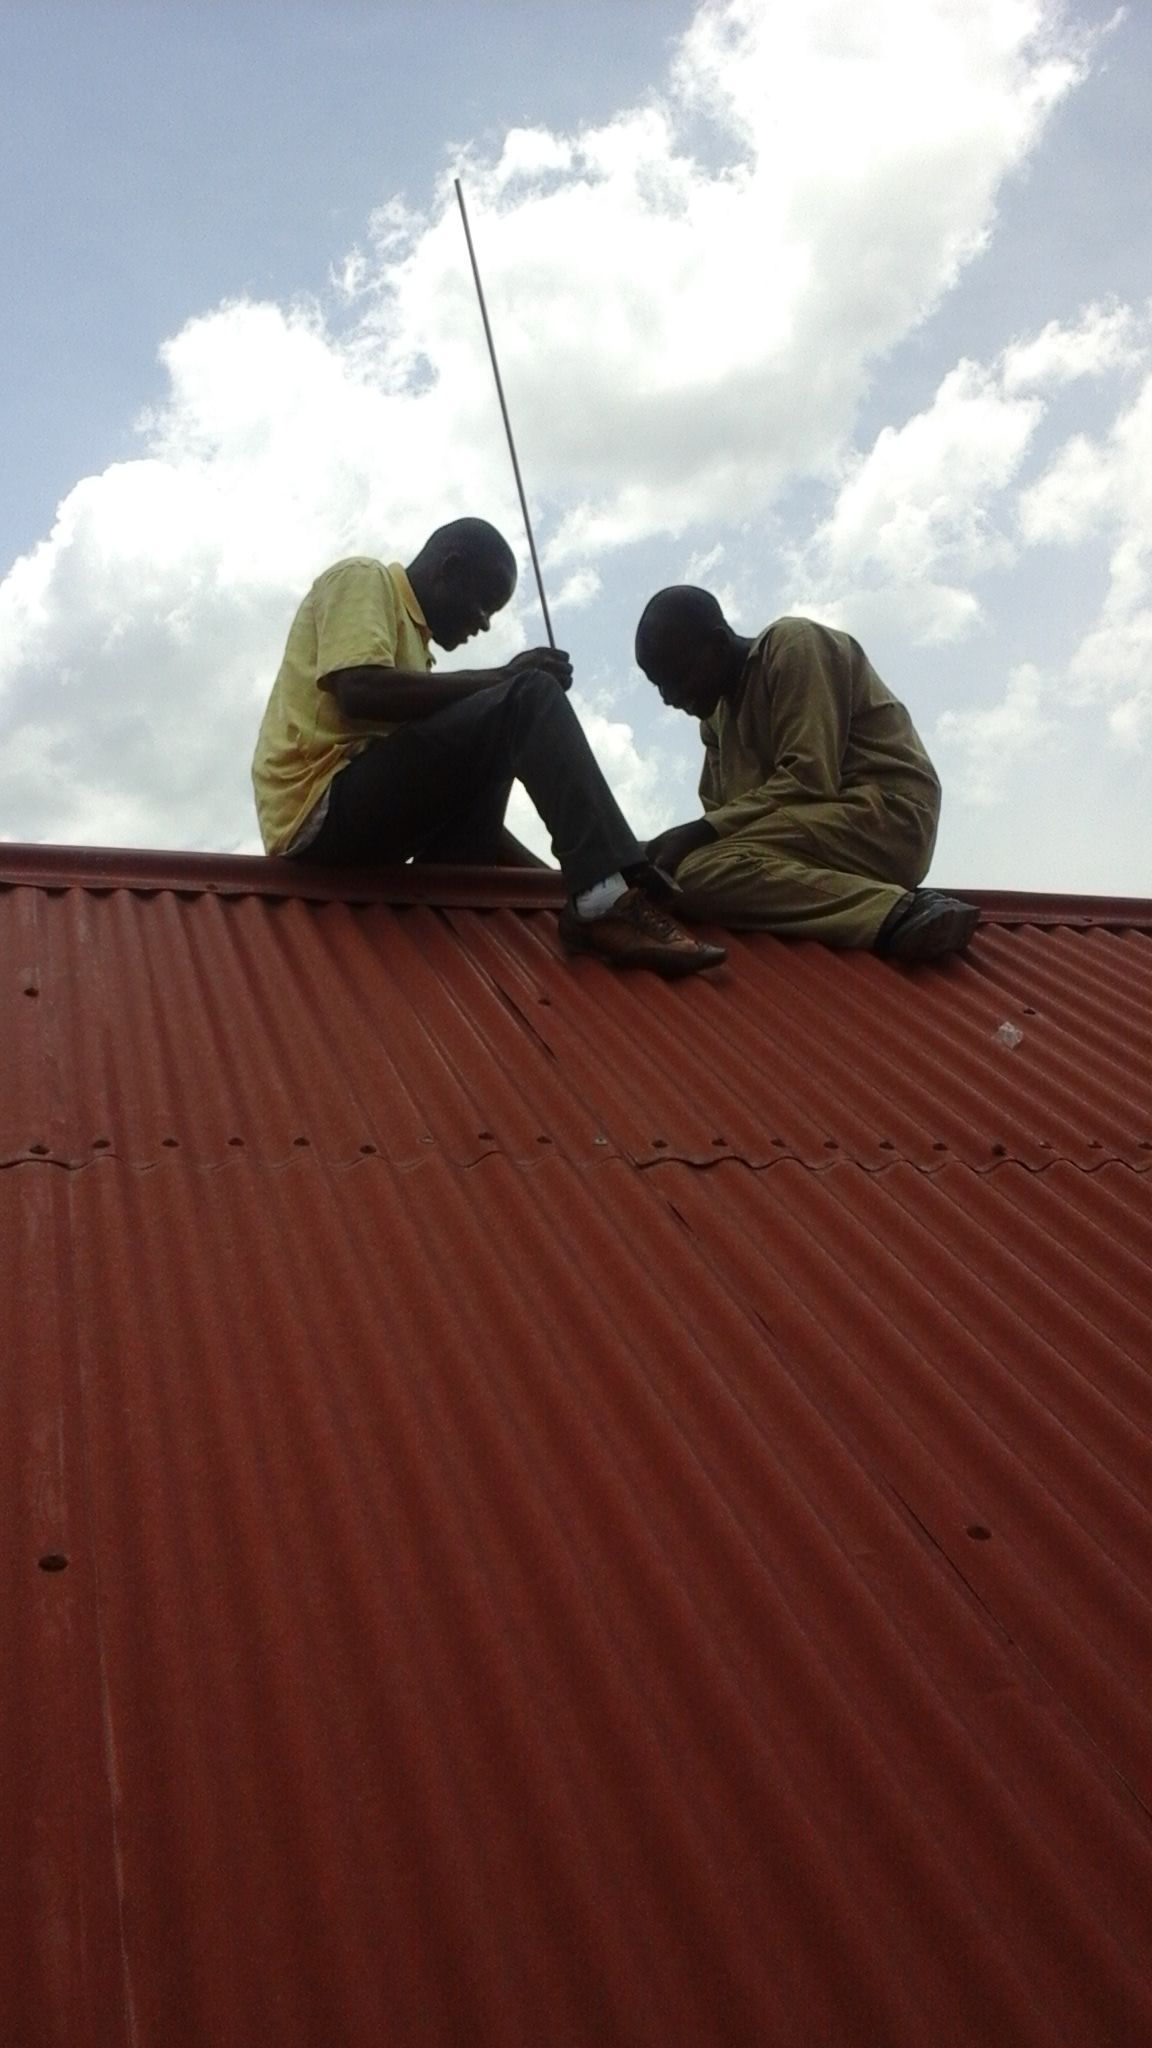 Installing lightning rods - called 'arrestors' by Ugandans